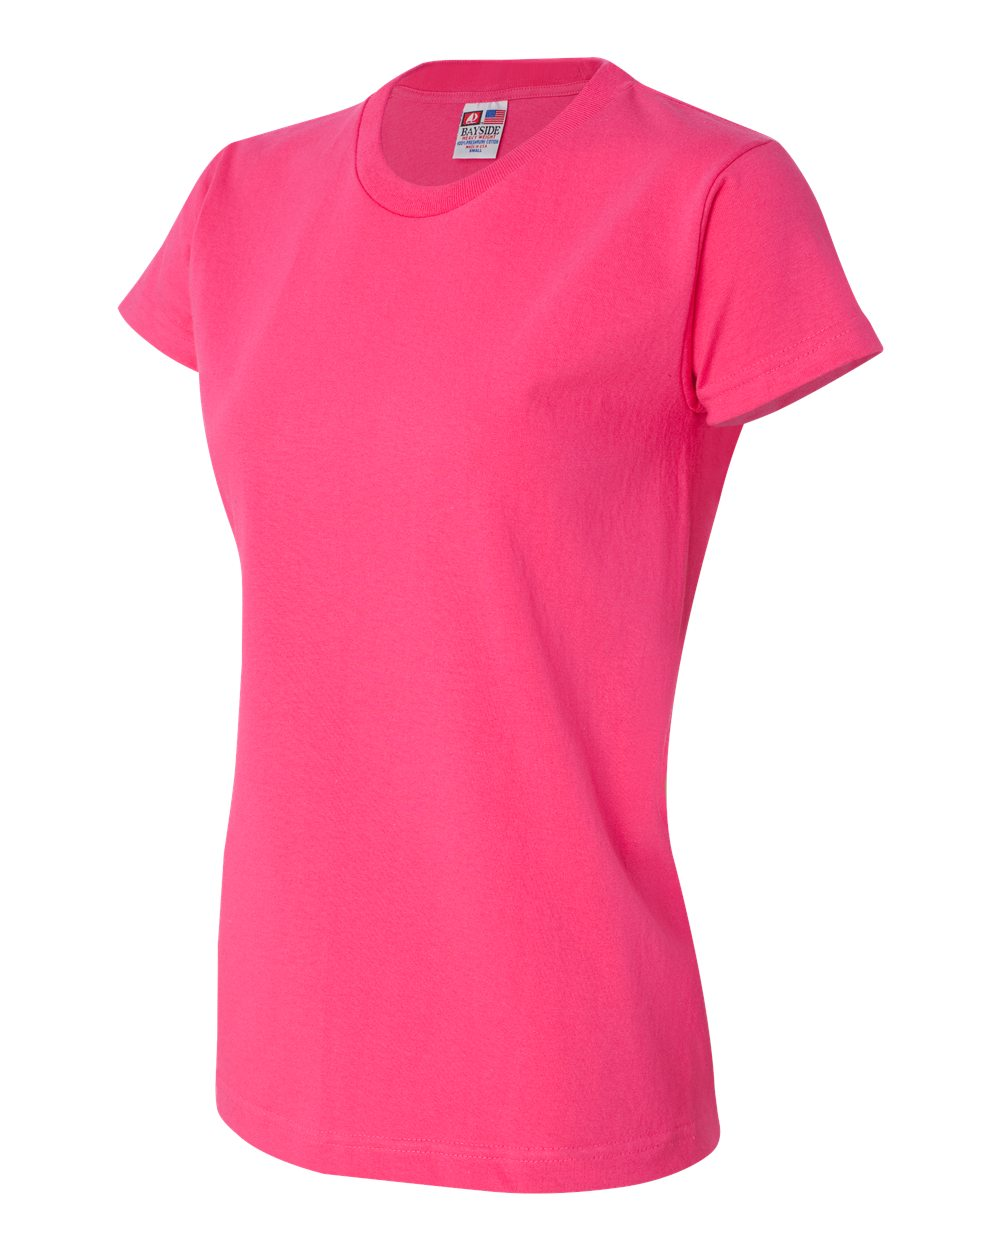 Bayside women 39 s short sleeve 3325 union made t shirts for Union made polo shirts